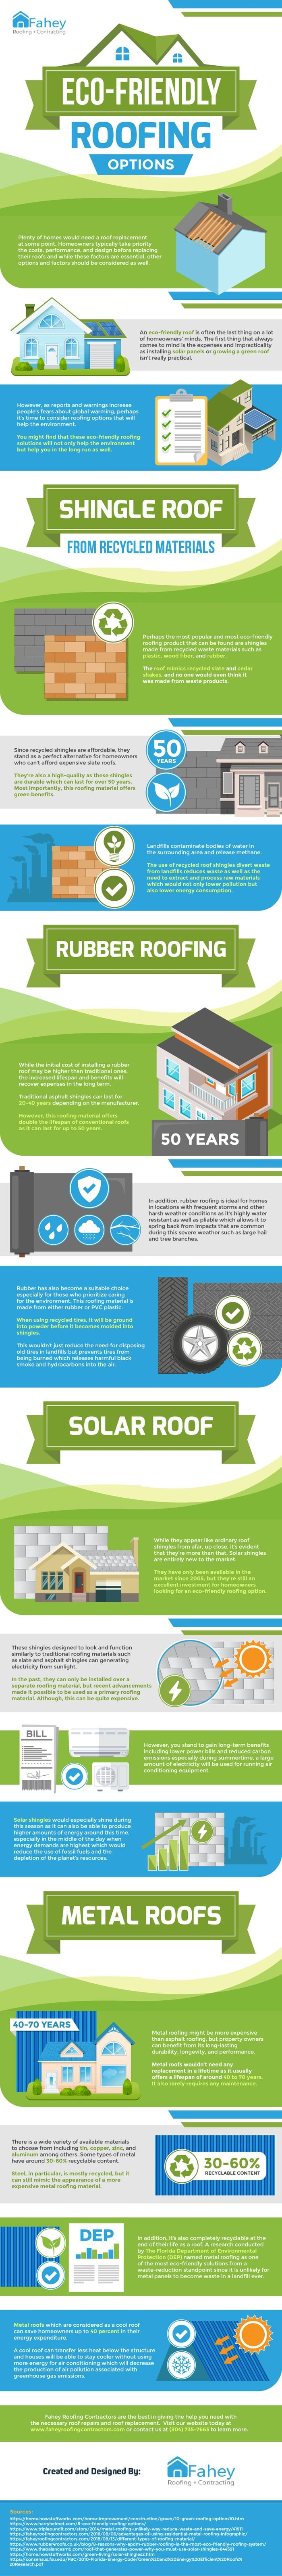 Eco-friendly Roofing Options Infographic